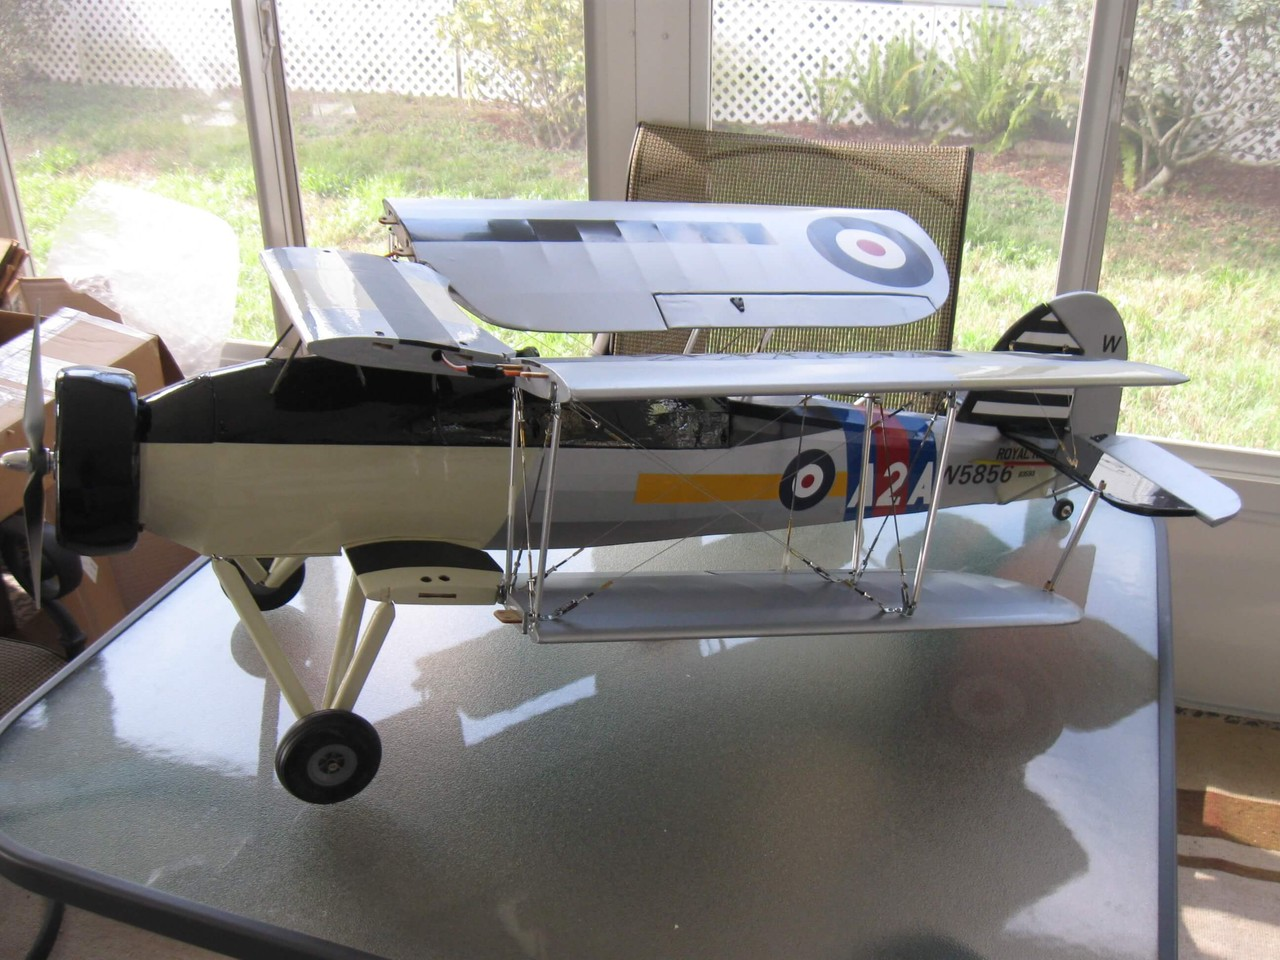 RC Fairey Swordfish -1/10 scale. Wings folded and ready to transport.